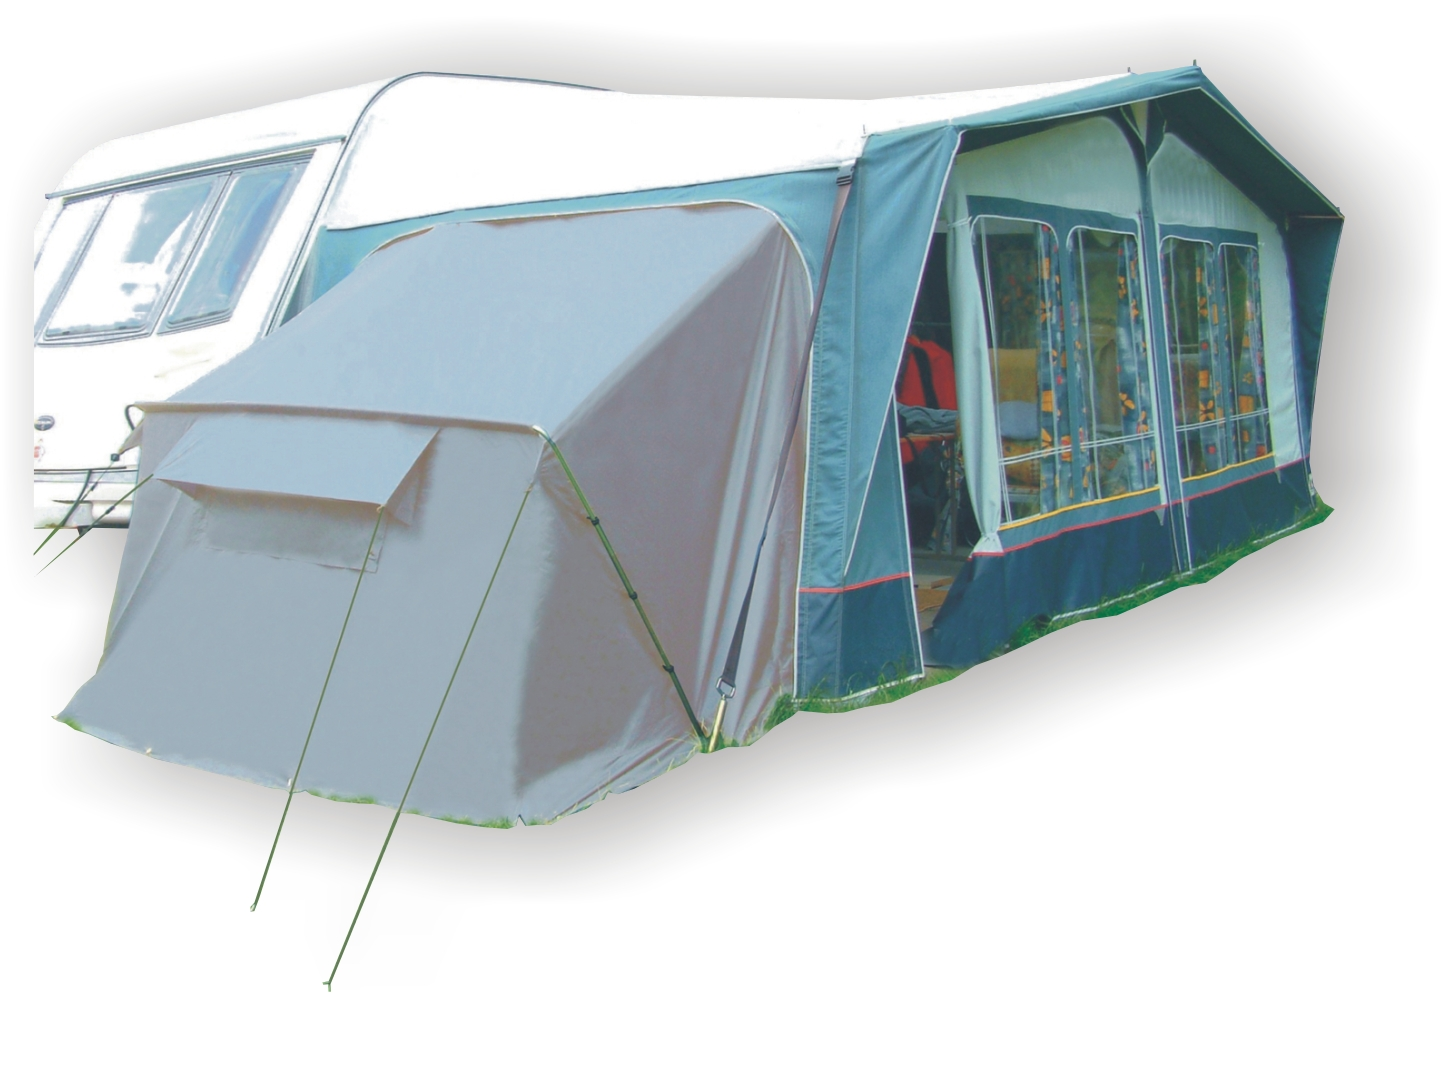 Porch Awnings from Pyramid Tuscany - Related Items - Bolsover Caravans